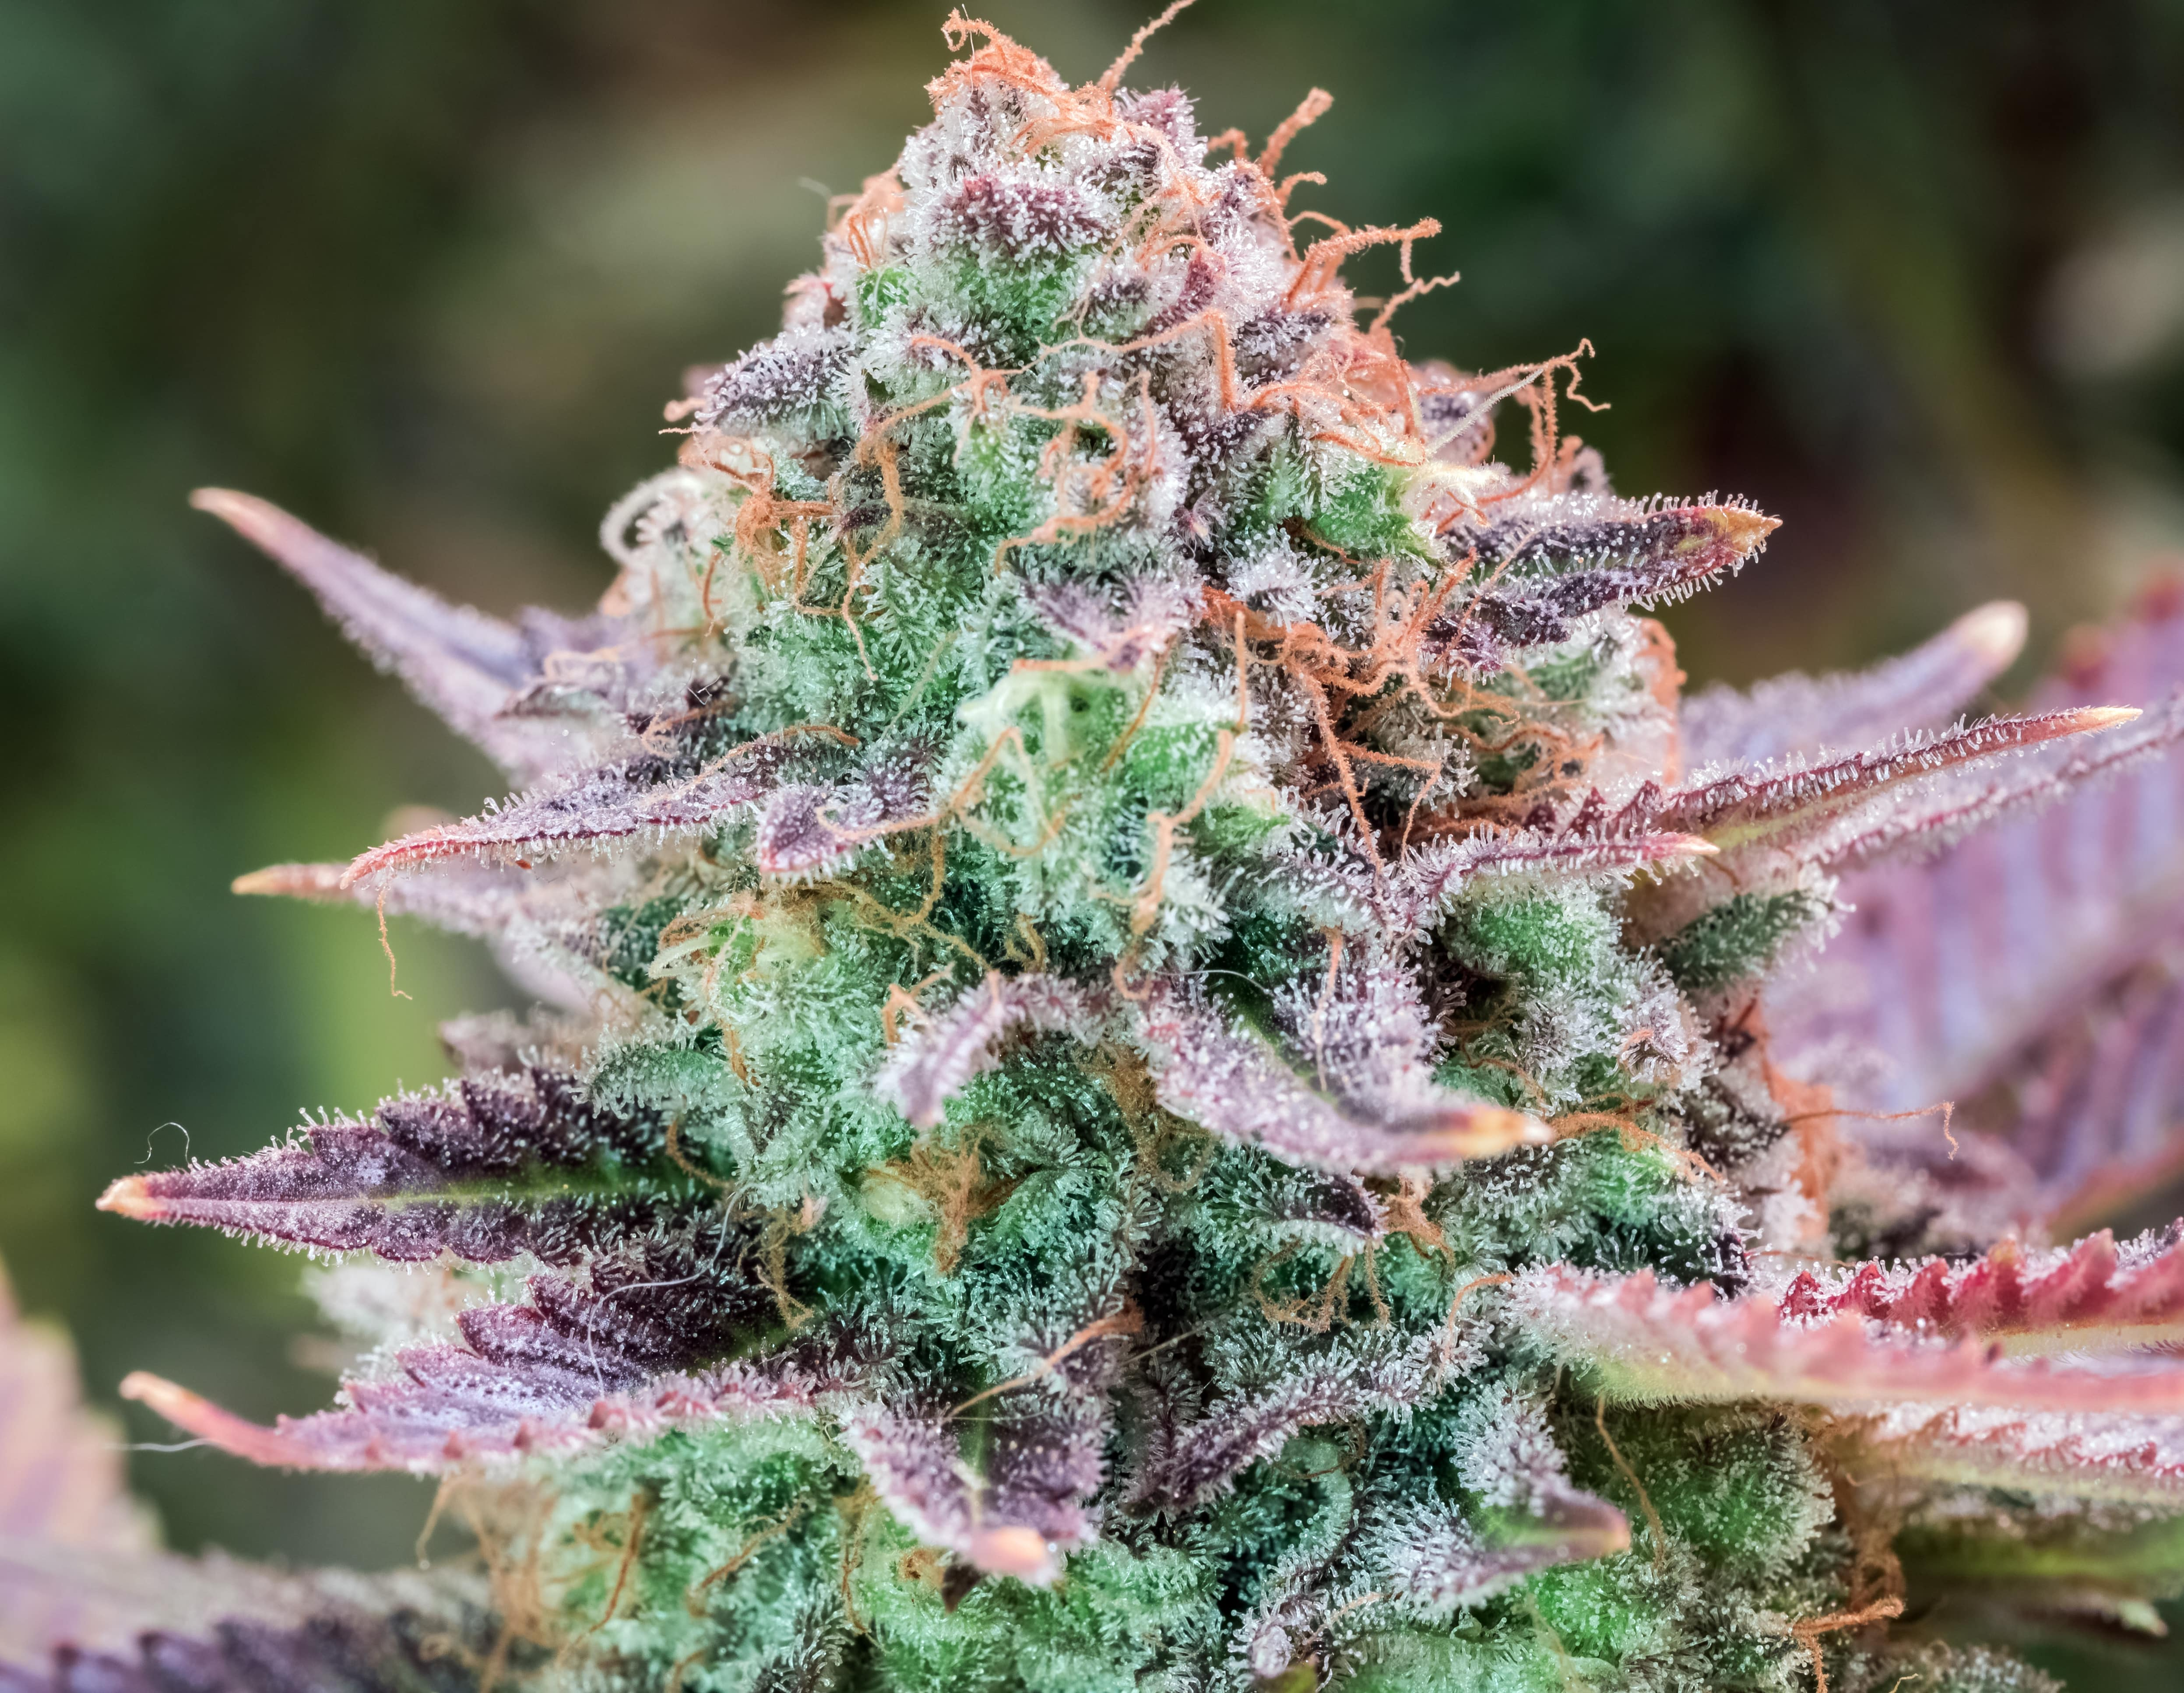 Top 5 latest cannabis strains in 2021